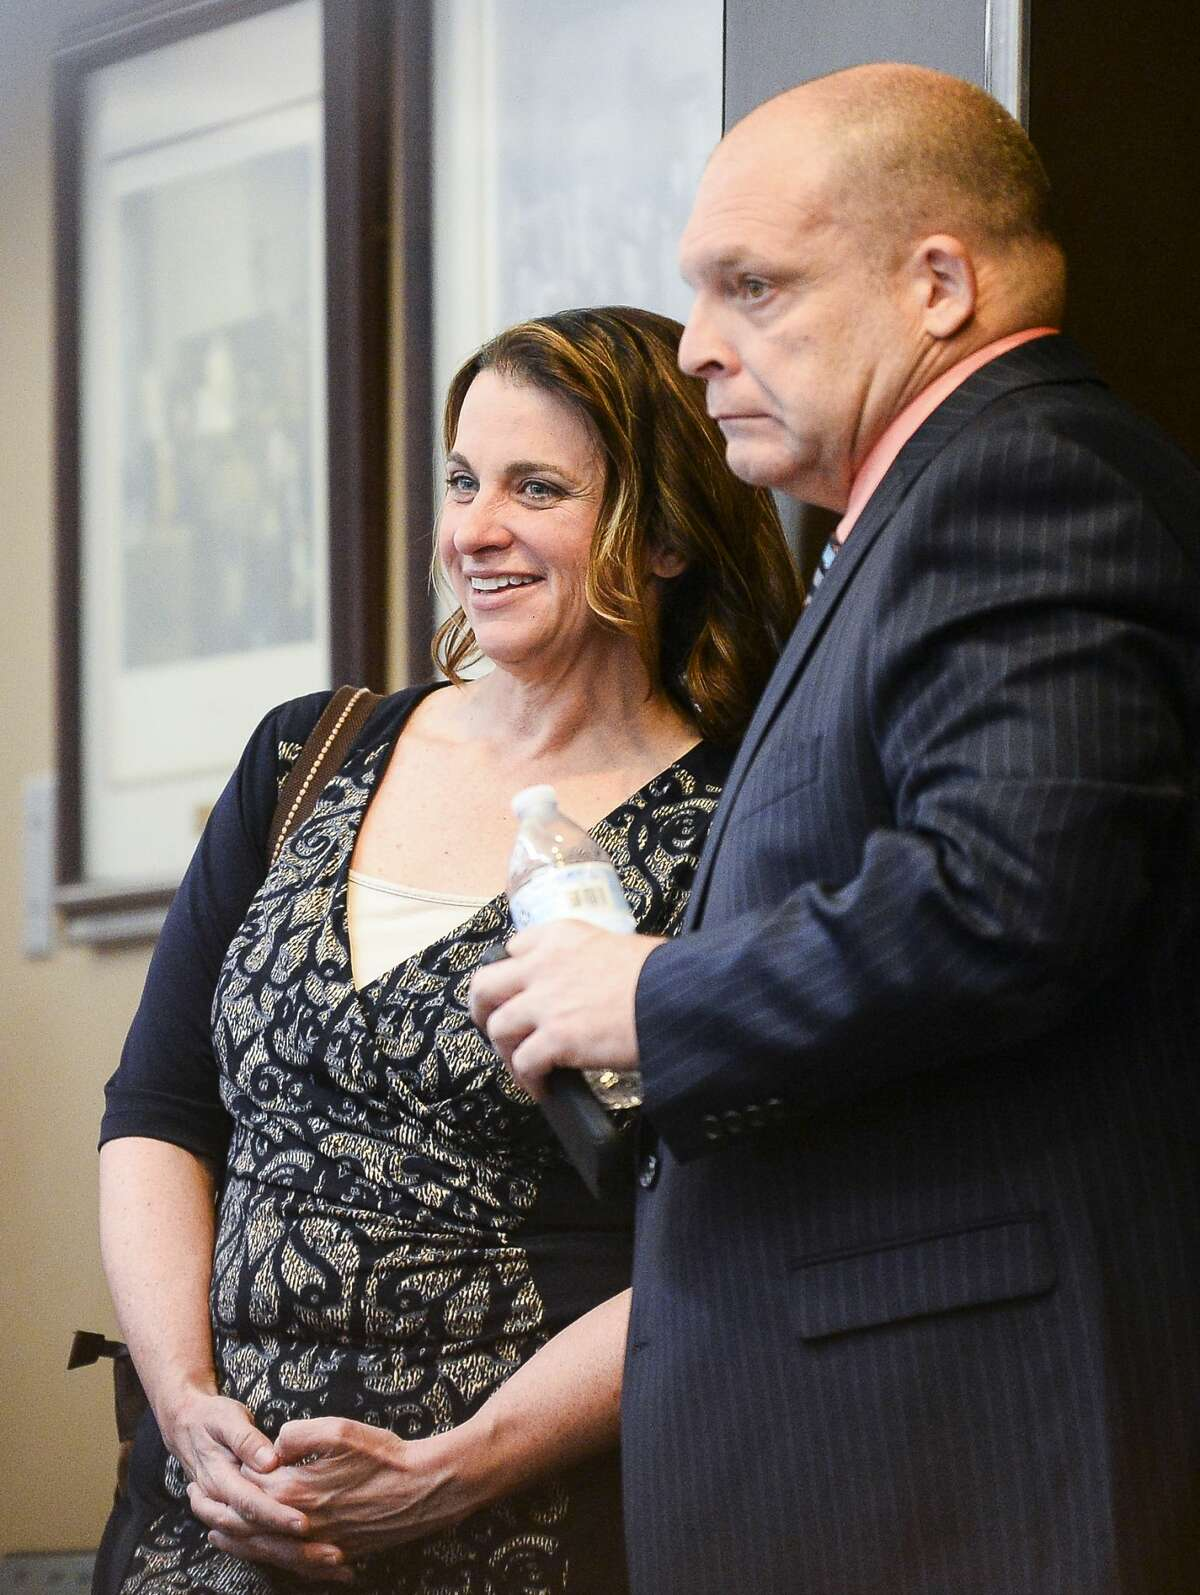 Kelly Daws with her defense attorney, Glen Crocker. After Daws was convicted and sentenced to 12 years in prison for conspiracy to have her estranged husband killed in 2016, Crocker filed a notice of appeal. Photo taken on Thursday, 03/28/19. Ryan Welch/The Enterprise